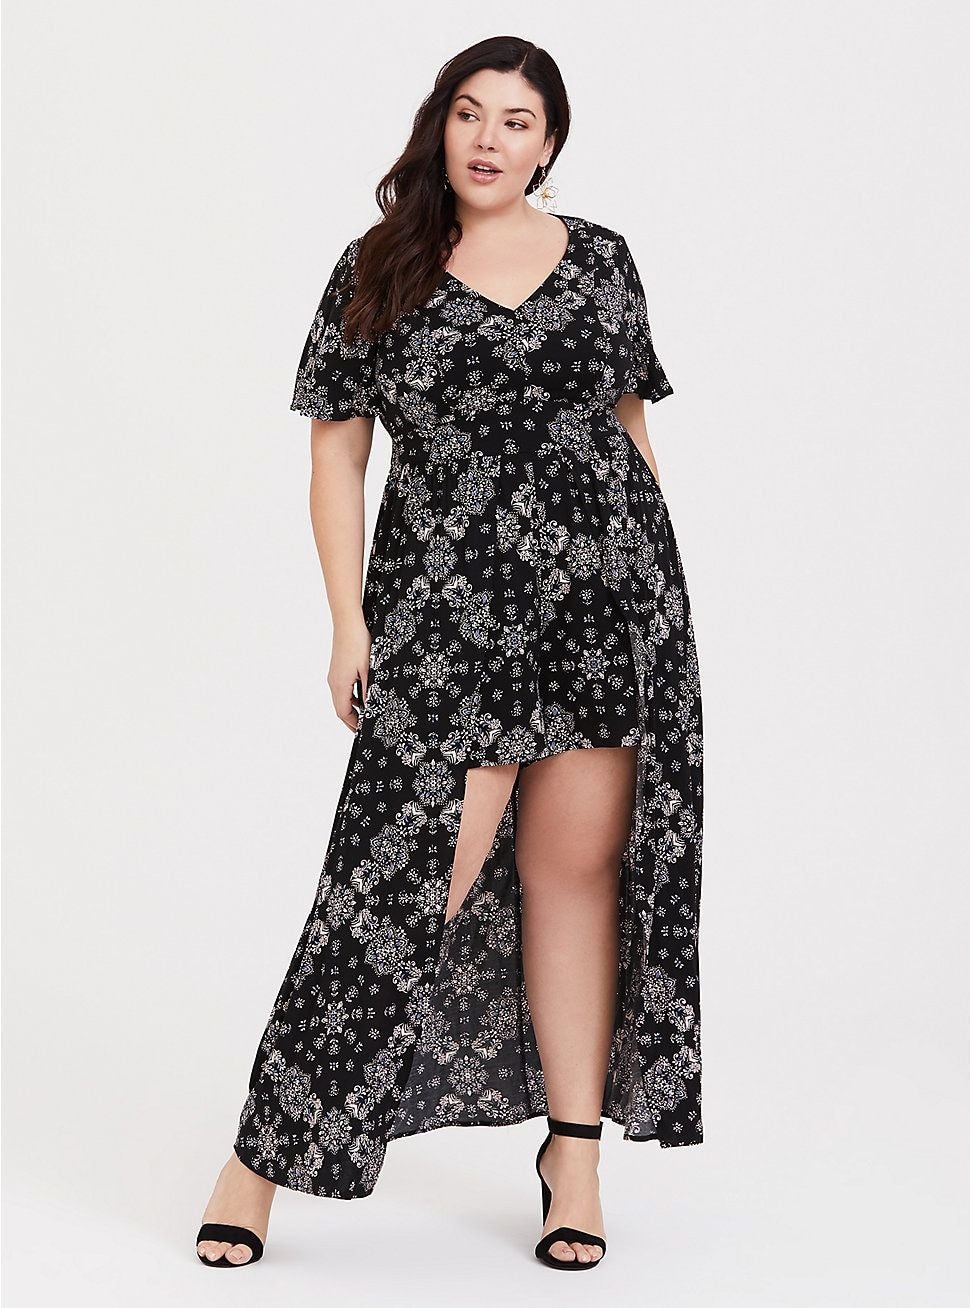 e5d3172a2d8 Black Mandala Walk Through Romper. Plus Size Black Mandala Overskirt Romper